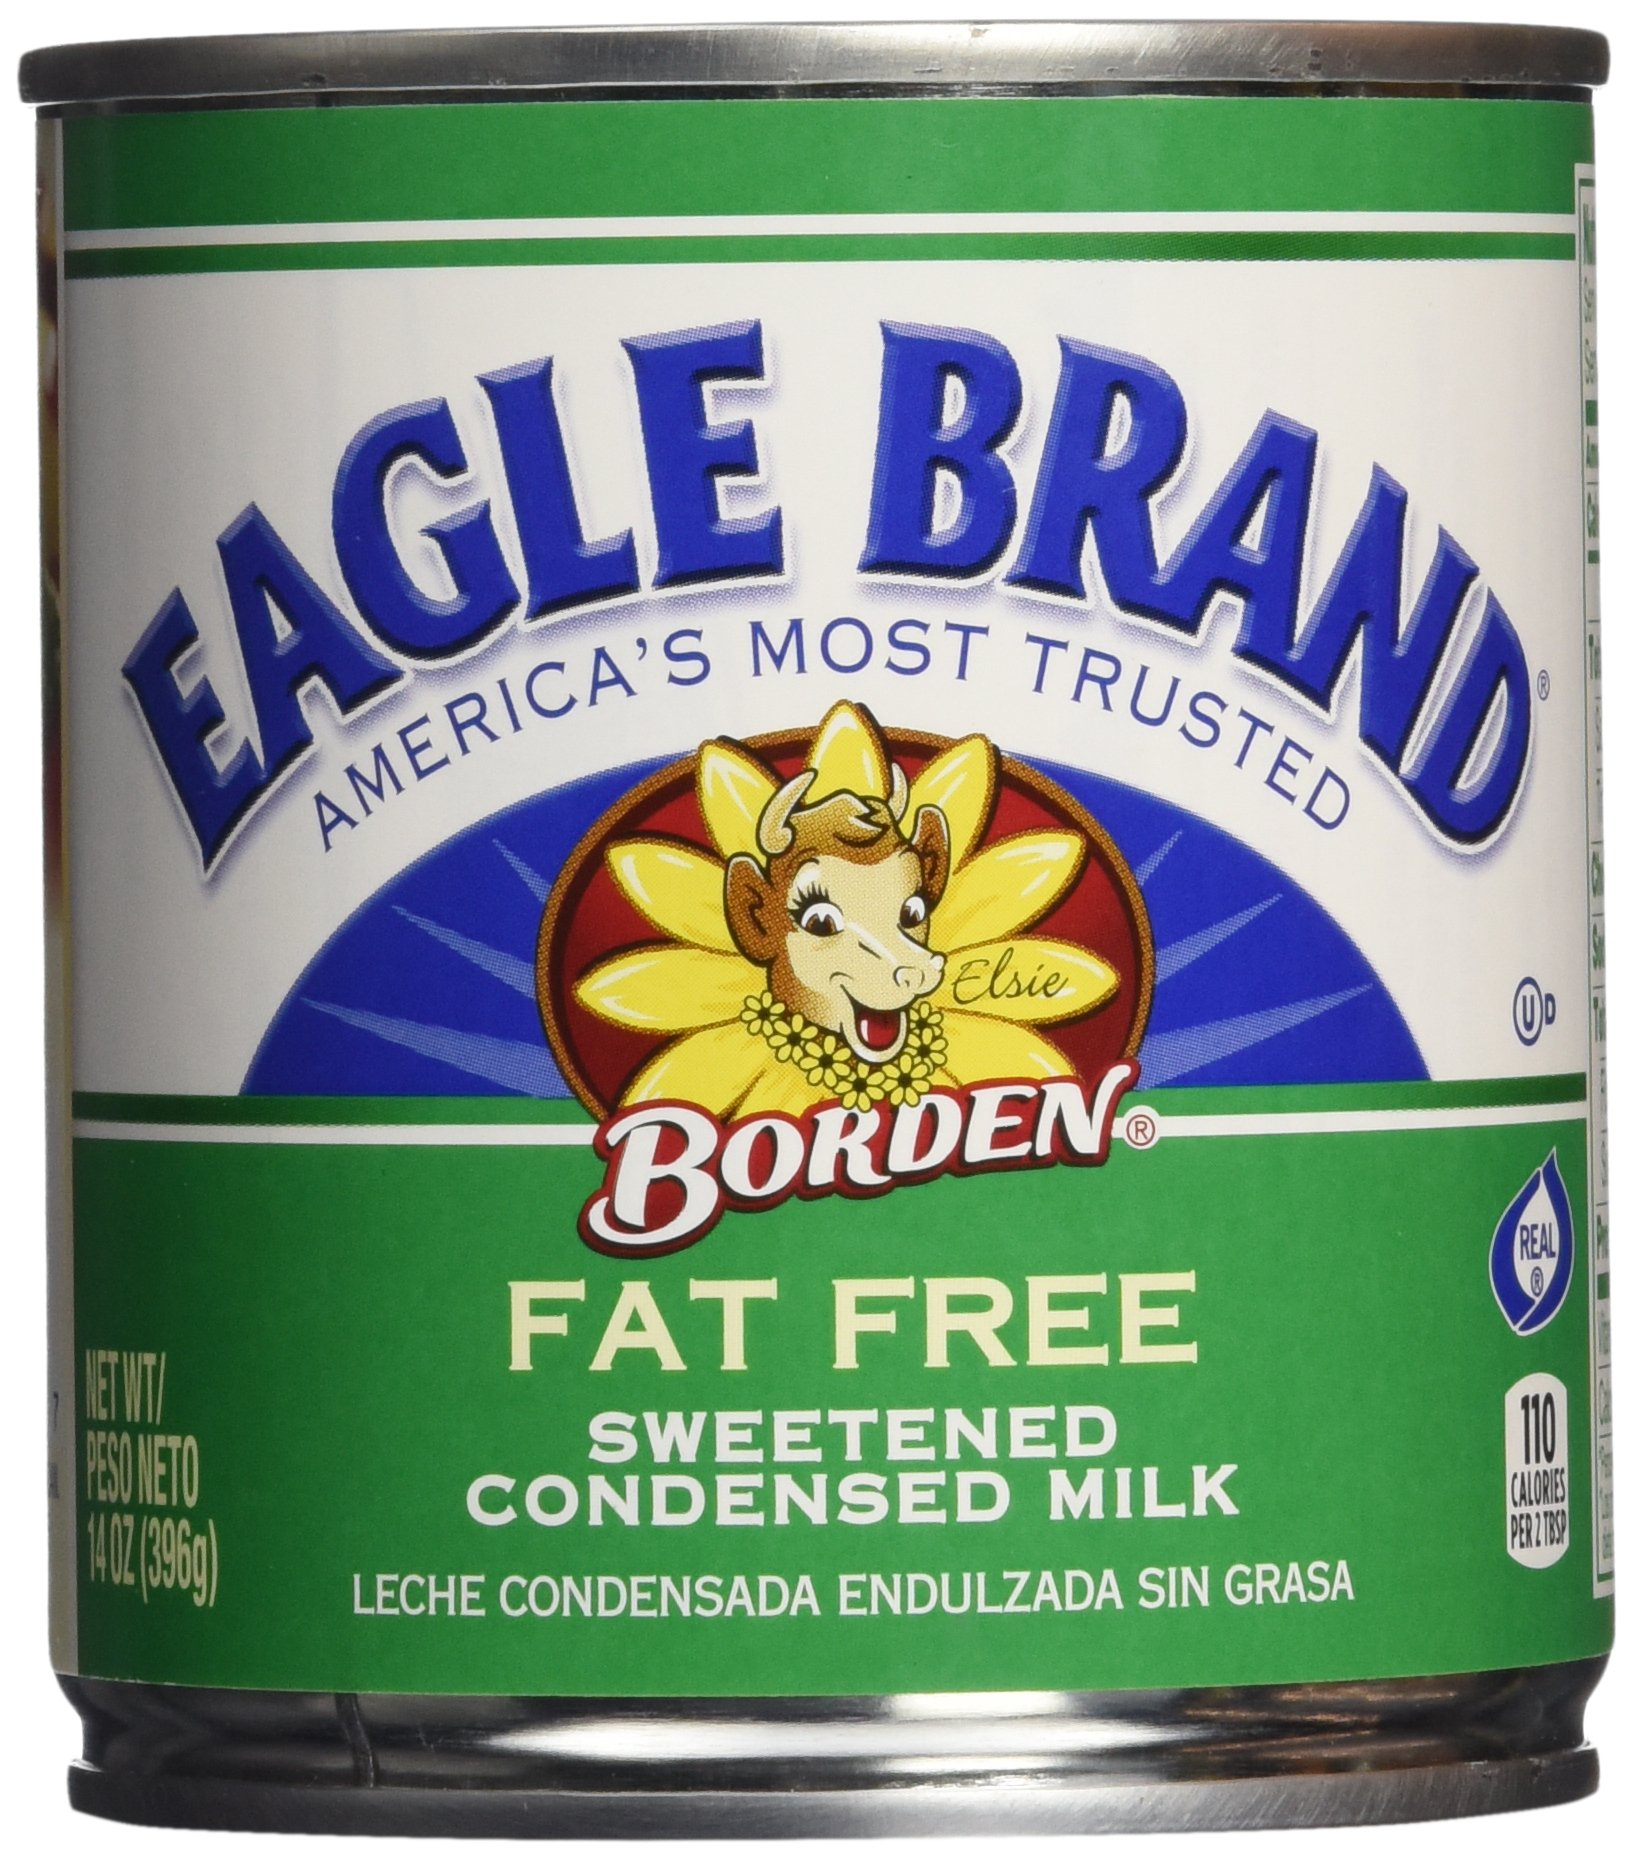 Eagle Brand Sweet Condensed Milk, 14 oz